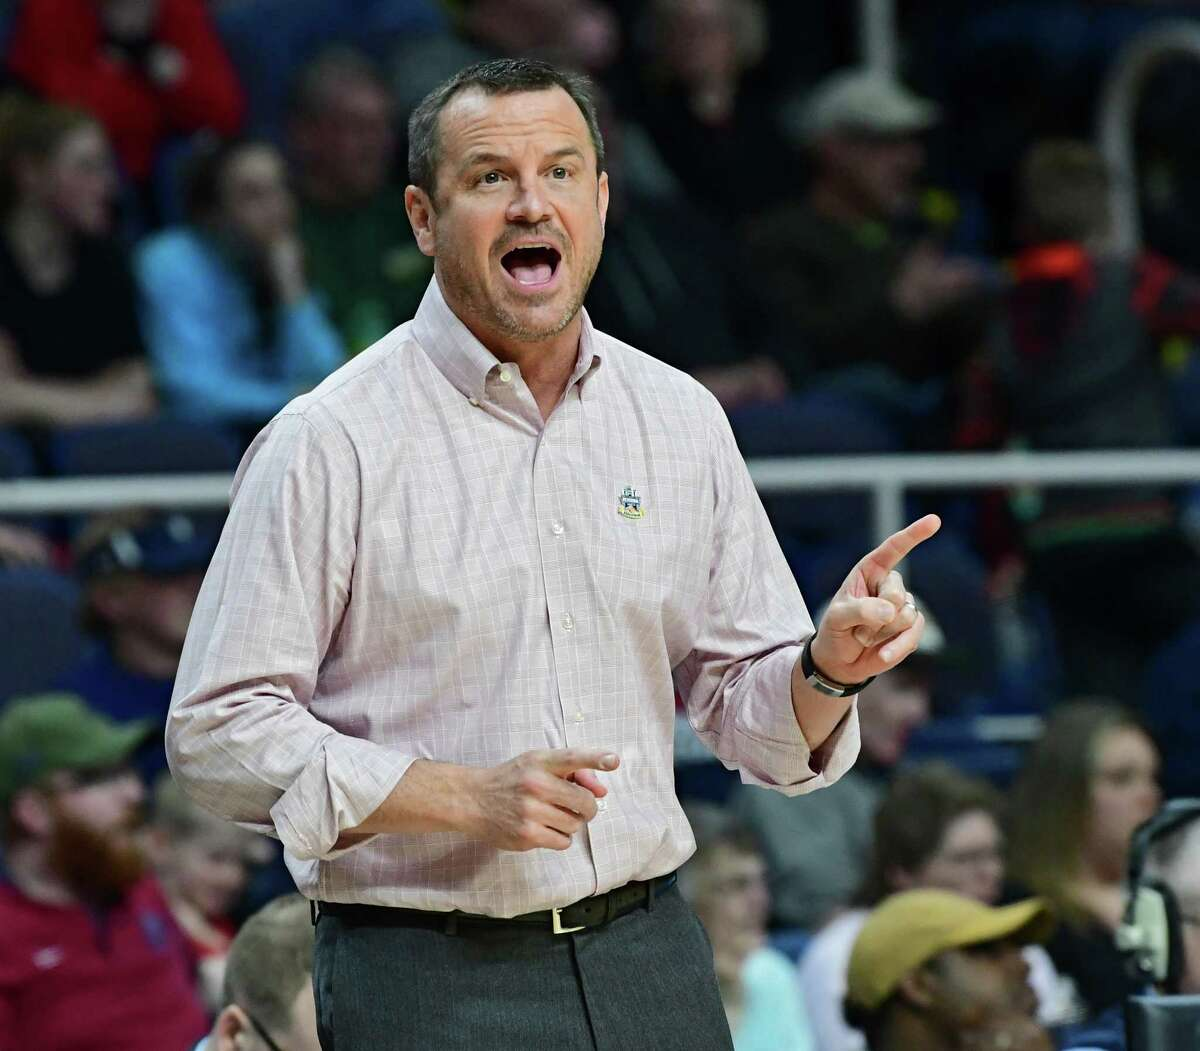 Louisville head coach Jeff Walz communicates to his team during a semifinal game against Oregon State in the Albany Regional of the NCAA Women's Basketball Championship at the Times Union Center on Friday, March 29, 2019 in Albany, N.Y. (Lori Van Buren/Times Union)